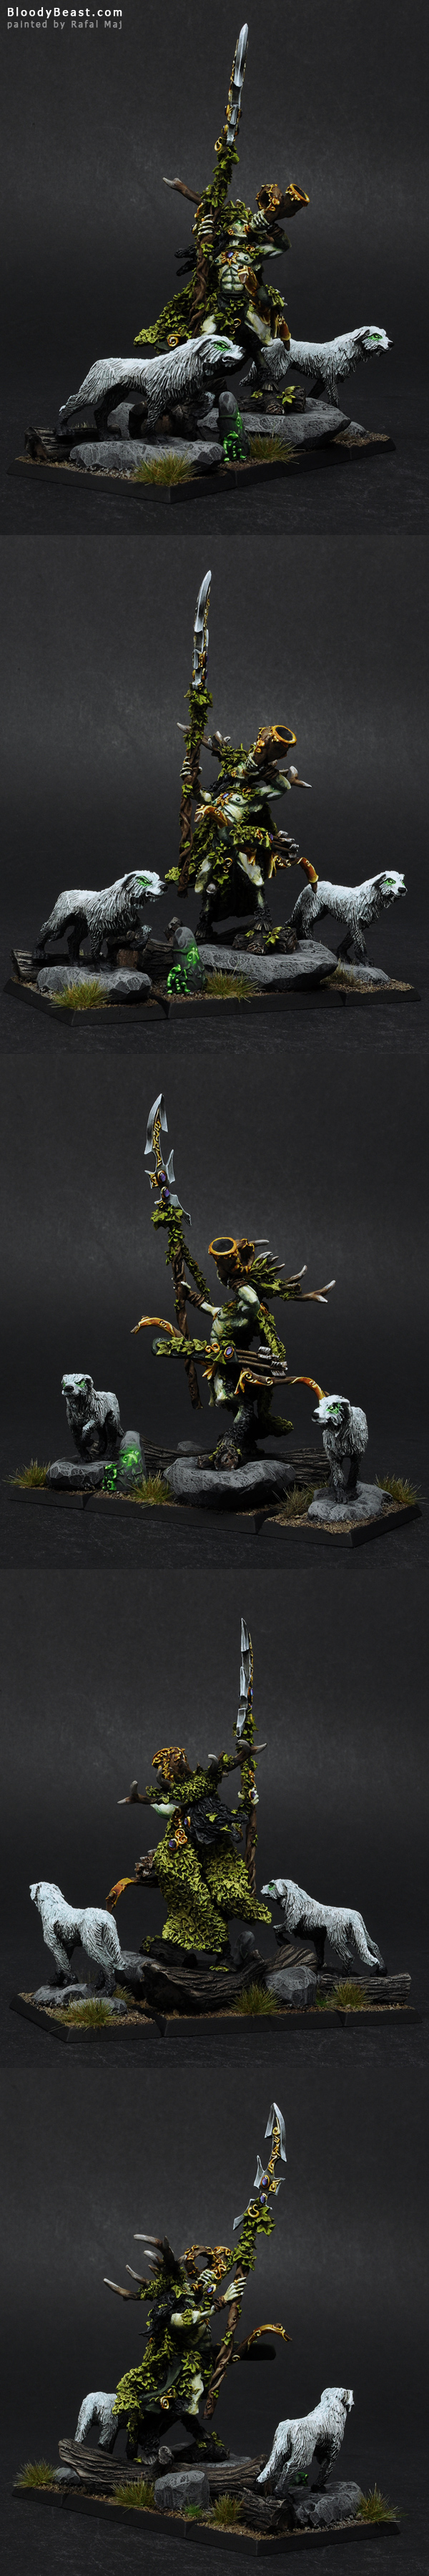 Orion, King in the Woods painted by Rafal Maj (BloodyBeast.com)